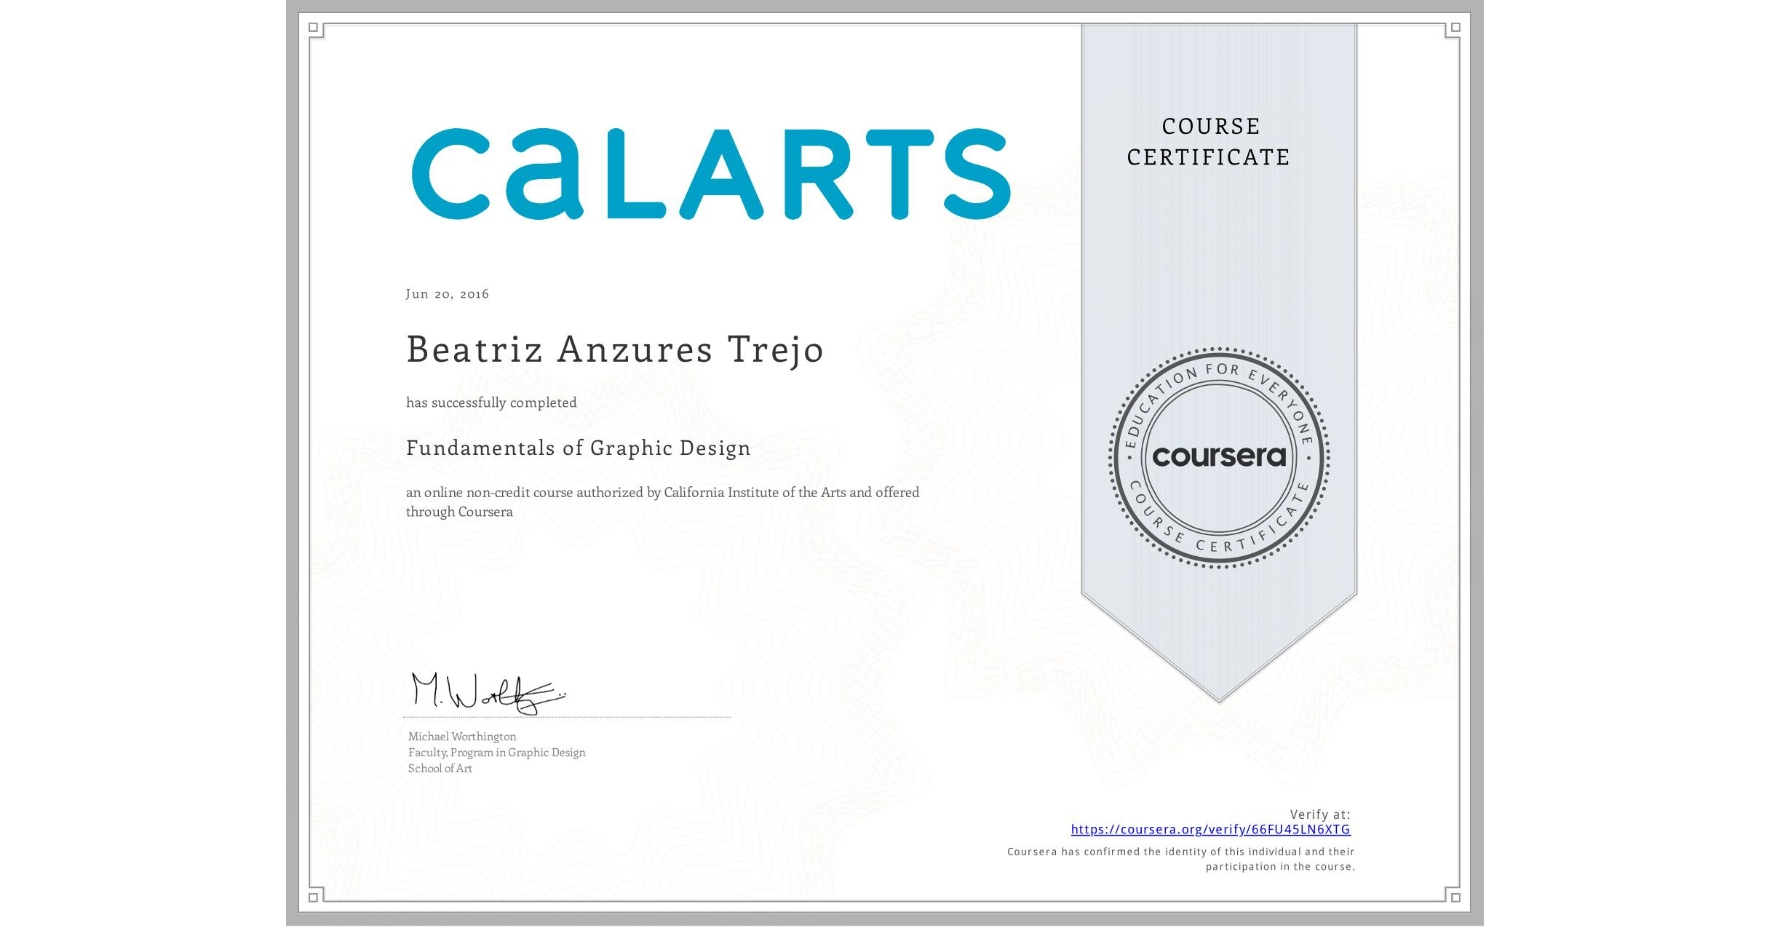 View certificate for Beatriz Anzures Trejo, Fundamentals of Graphic Design, an online non-credit course authorized by California Institute of the Arts and offered through Coursera